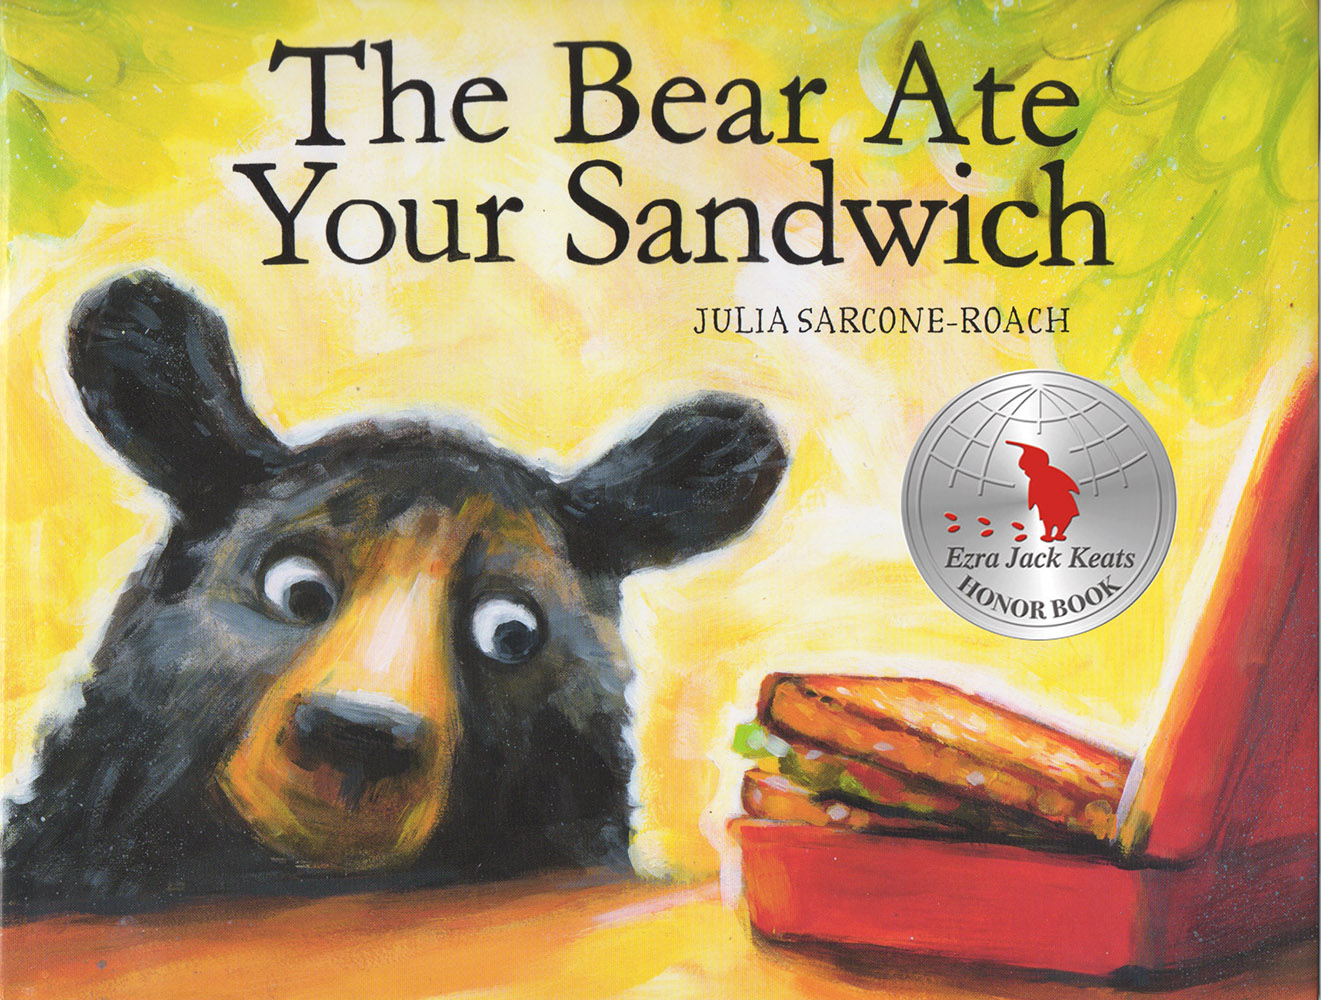 Sarcone-Roach, Julia 2015_01 THE BEAR ATE YOUR SANDWICH - PB - RLM PR.jpg